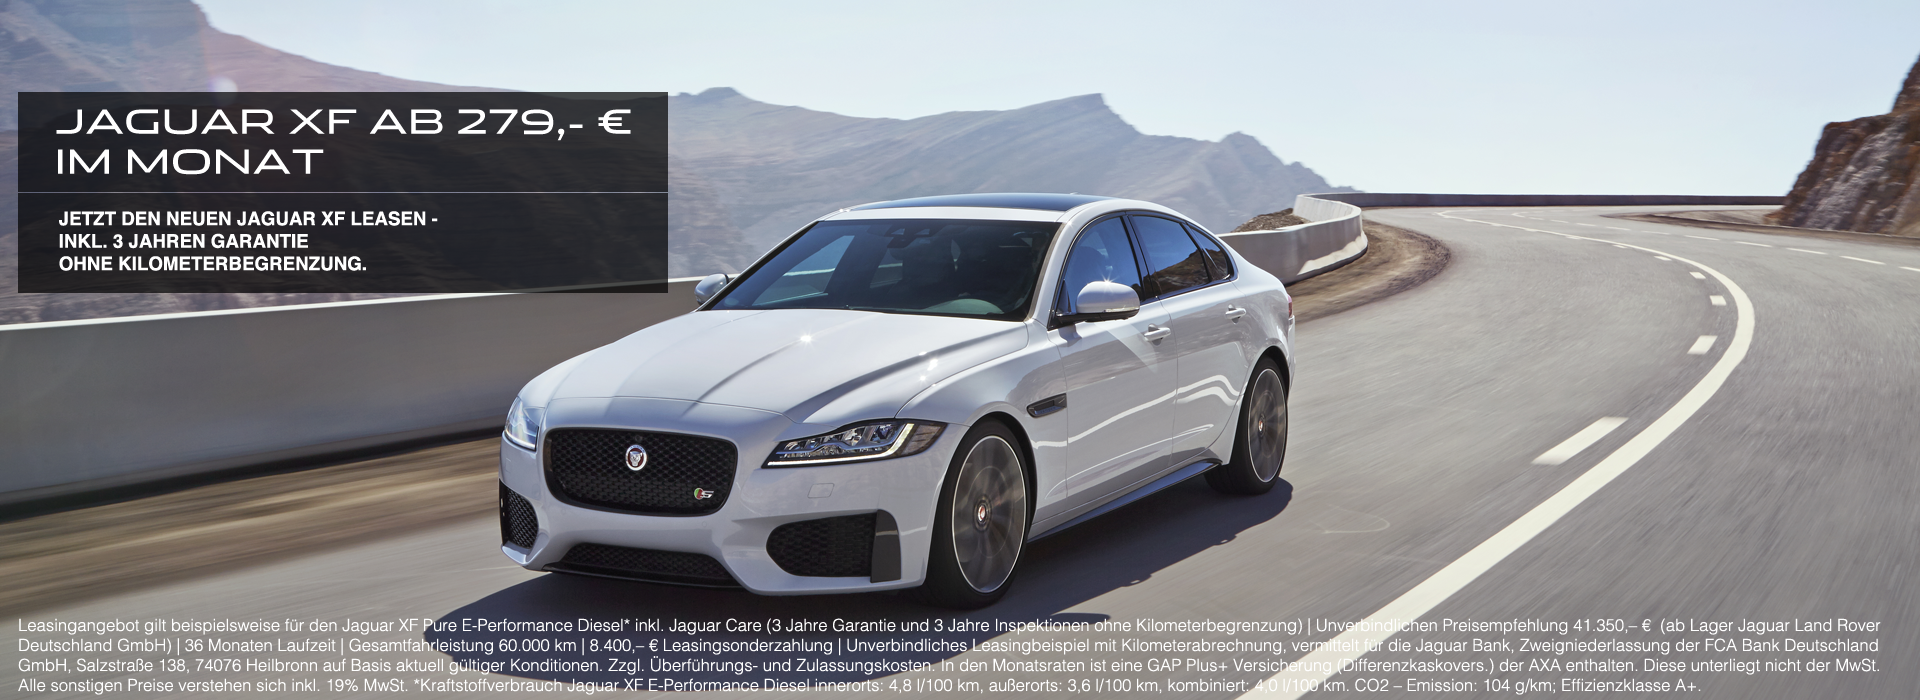 Jaguar XF Leasingangebot